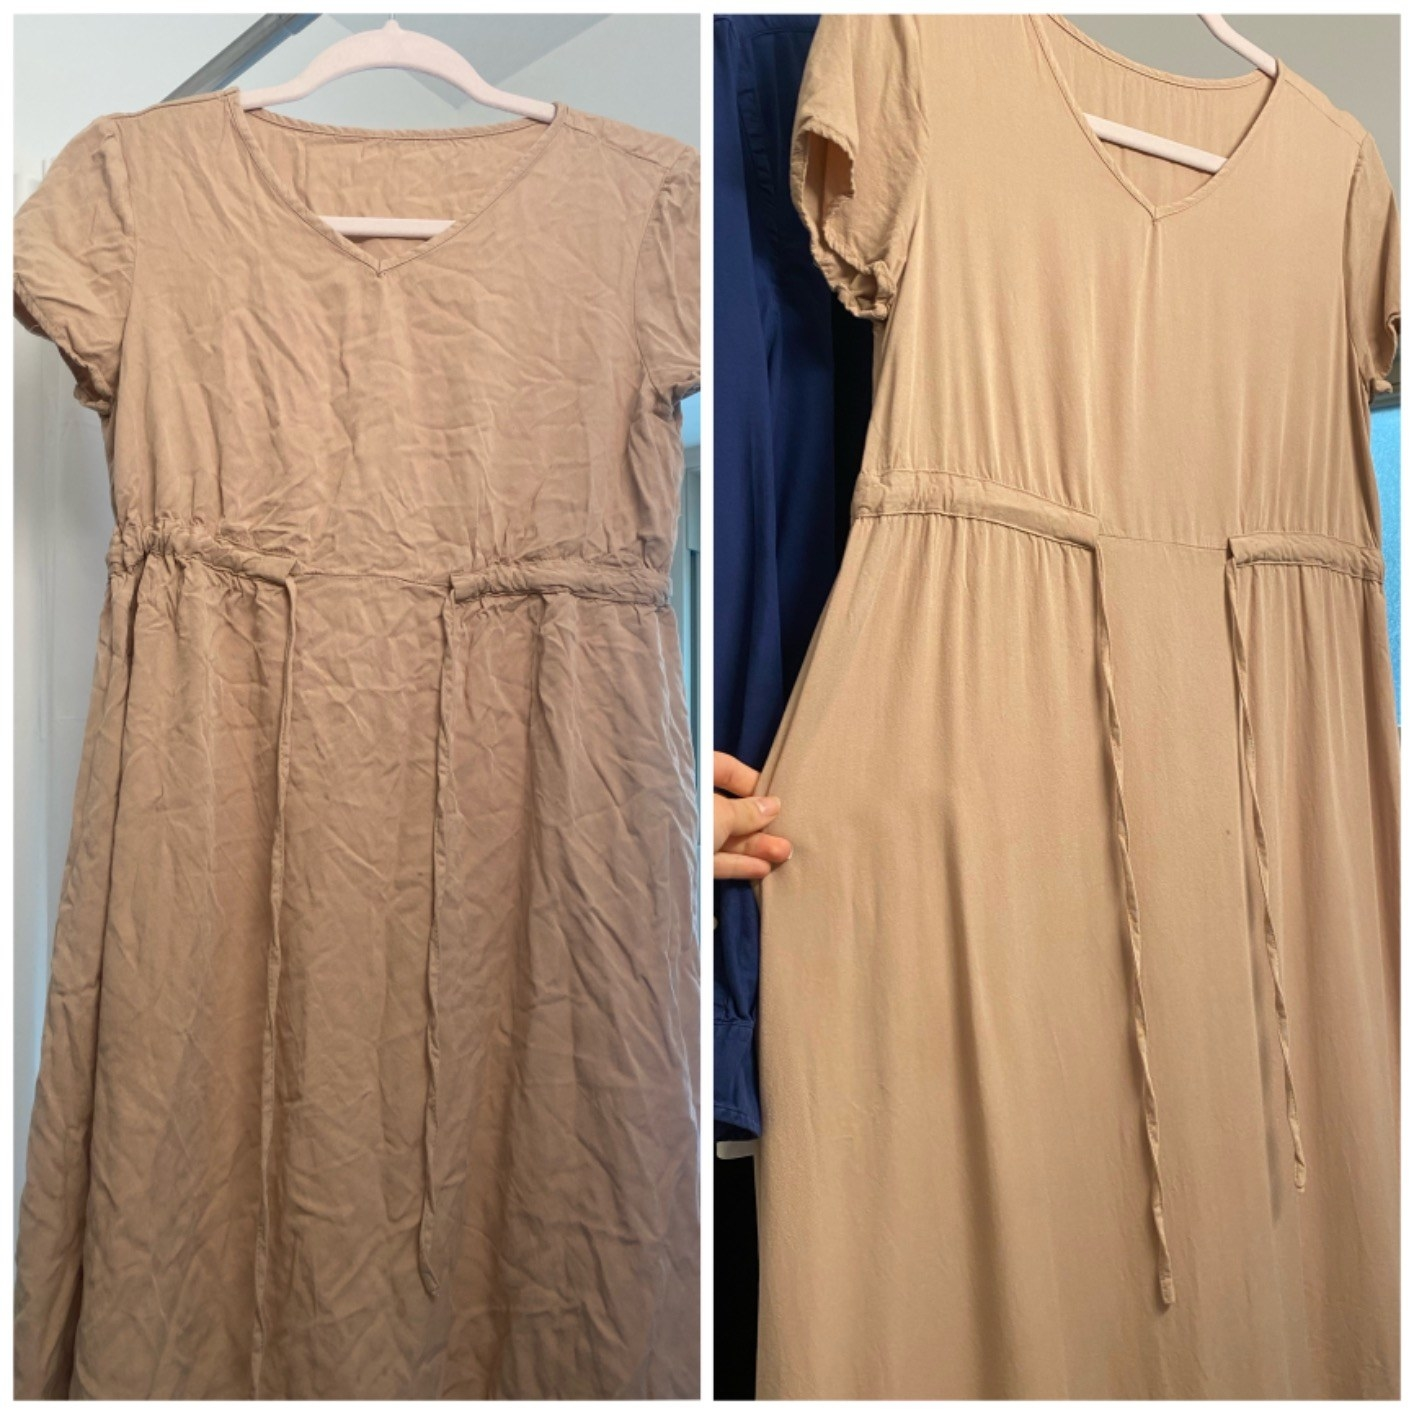 a reviewer photo of a dress before and after using the spray